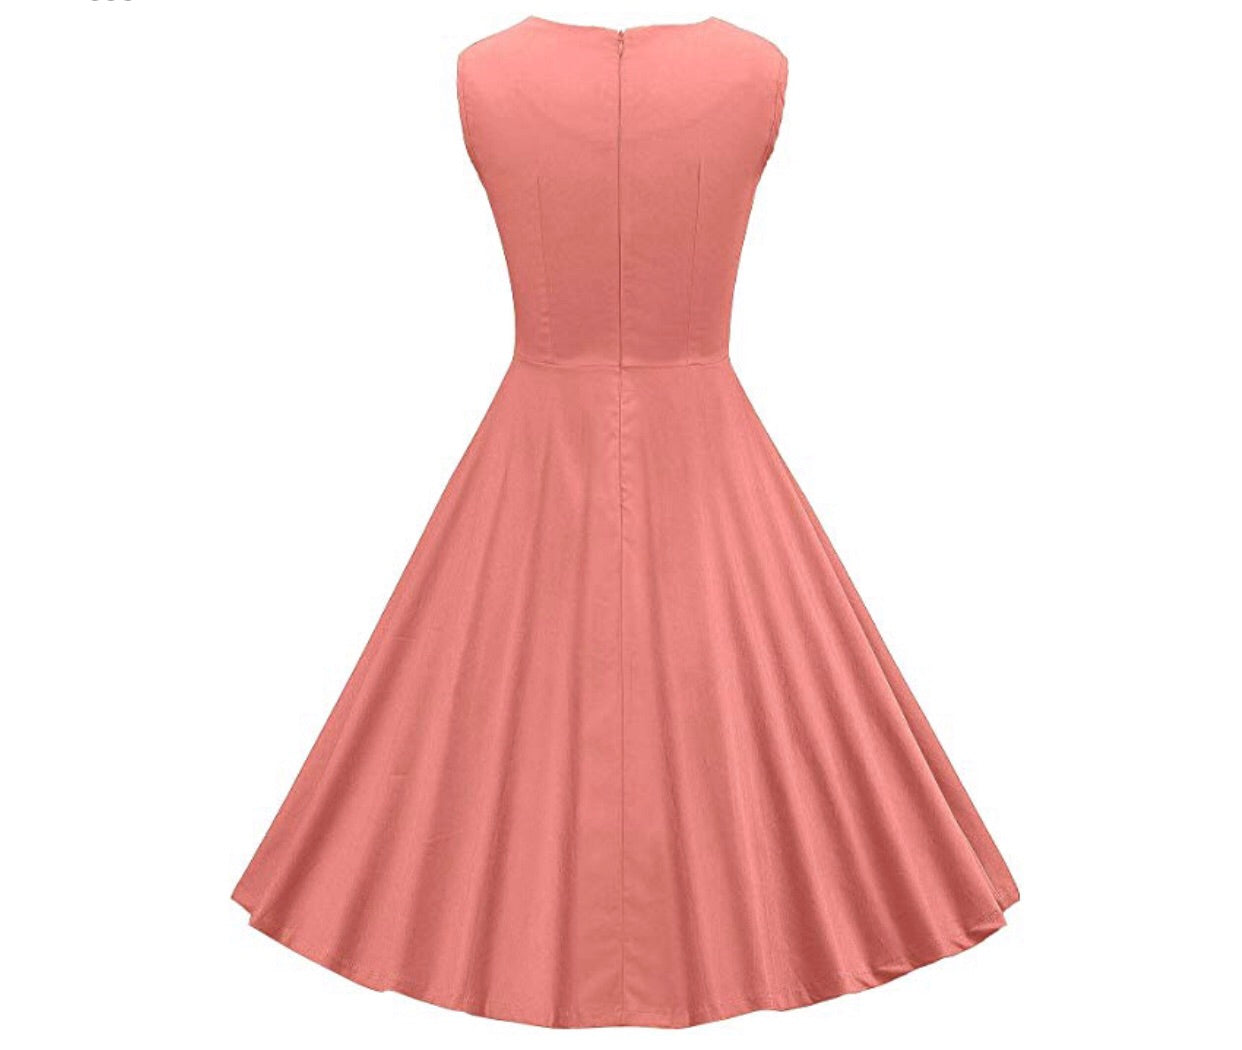 1e46d55bcf4c ... Classy Audrey Hepburn Style 1950s Vintage Rockabilly Swing Dress, Sizes  Small - 2XLarge (Peach ...